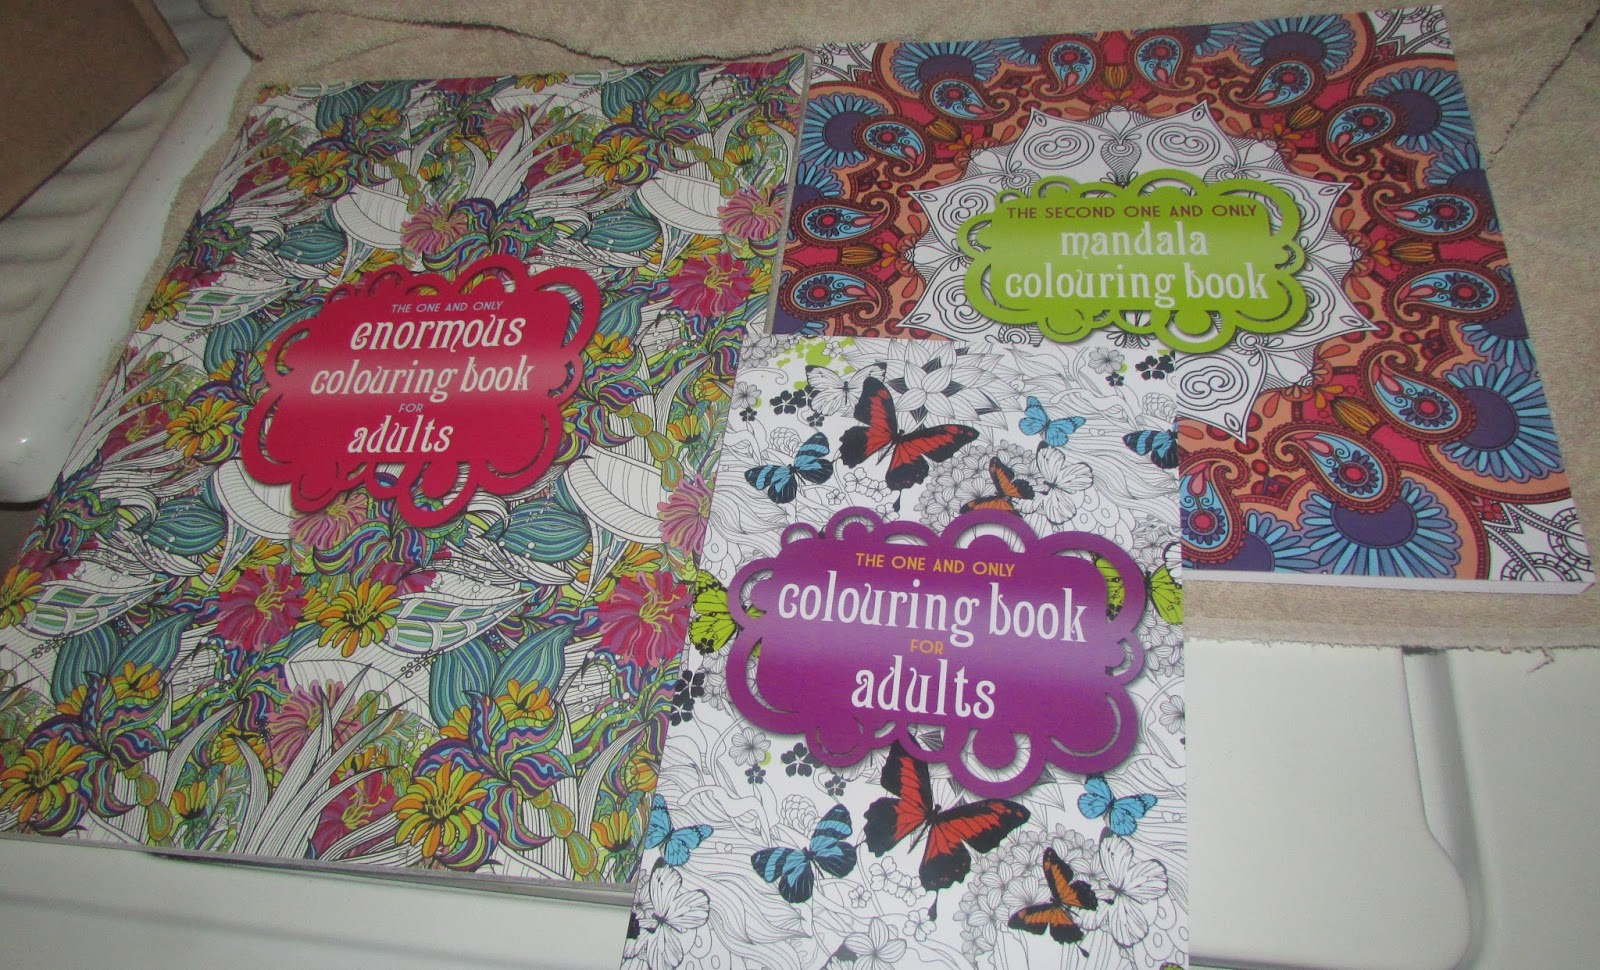 One Company That Ive Come Across And Really Like For Their Adult Coloring Books Is Phoenix Yard Based Out Of The UK Are